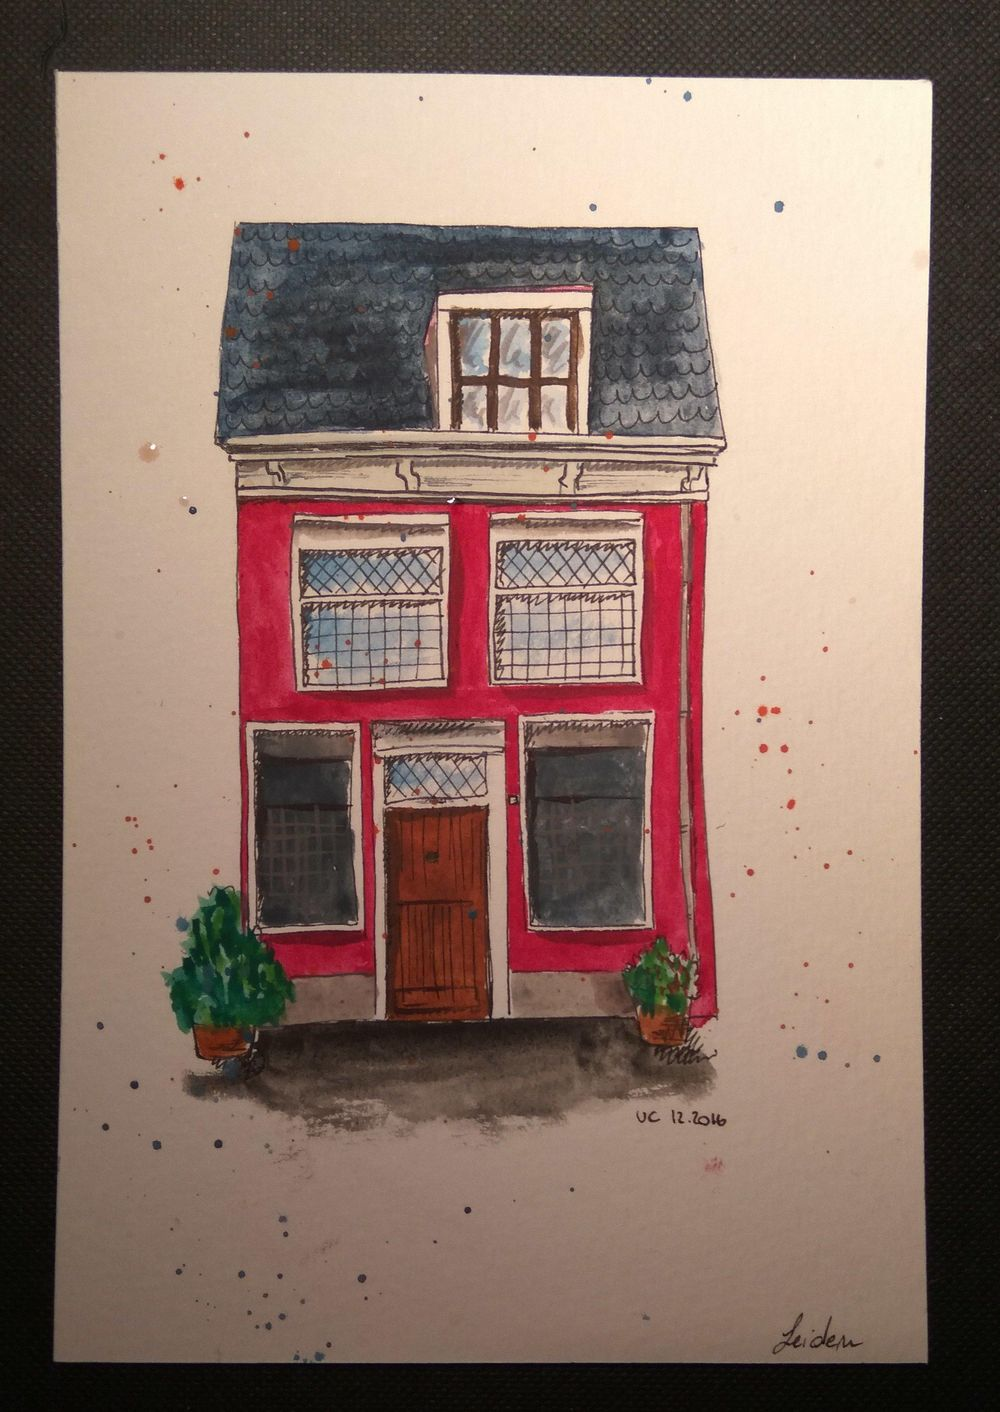 Leiden Sketch - image 1 - student project